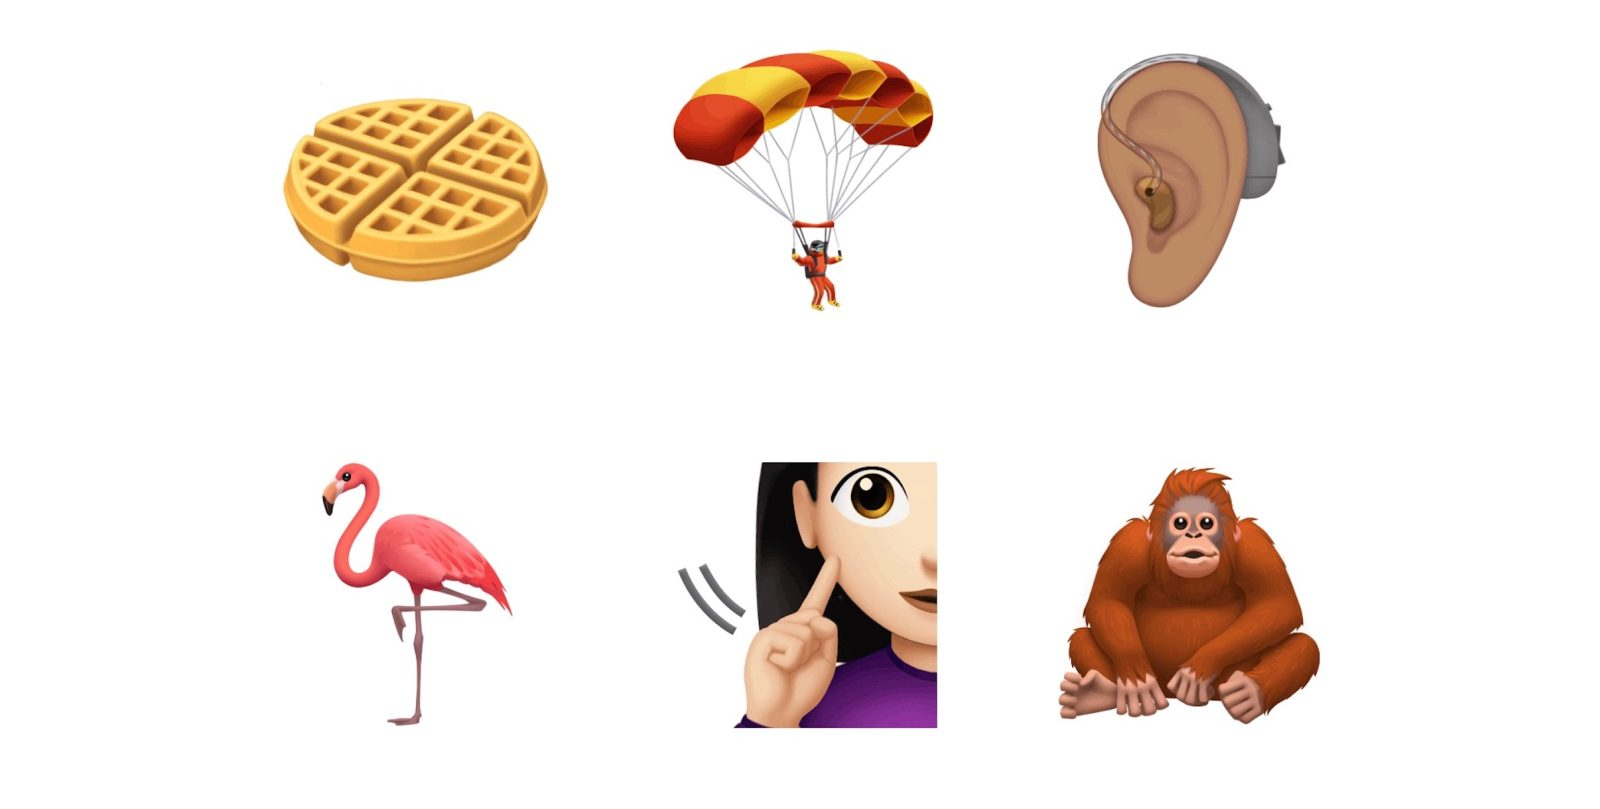 Apple teases nearly 60 new emoji coming to iOS and Mac this fall [Gallery]